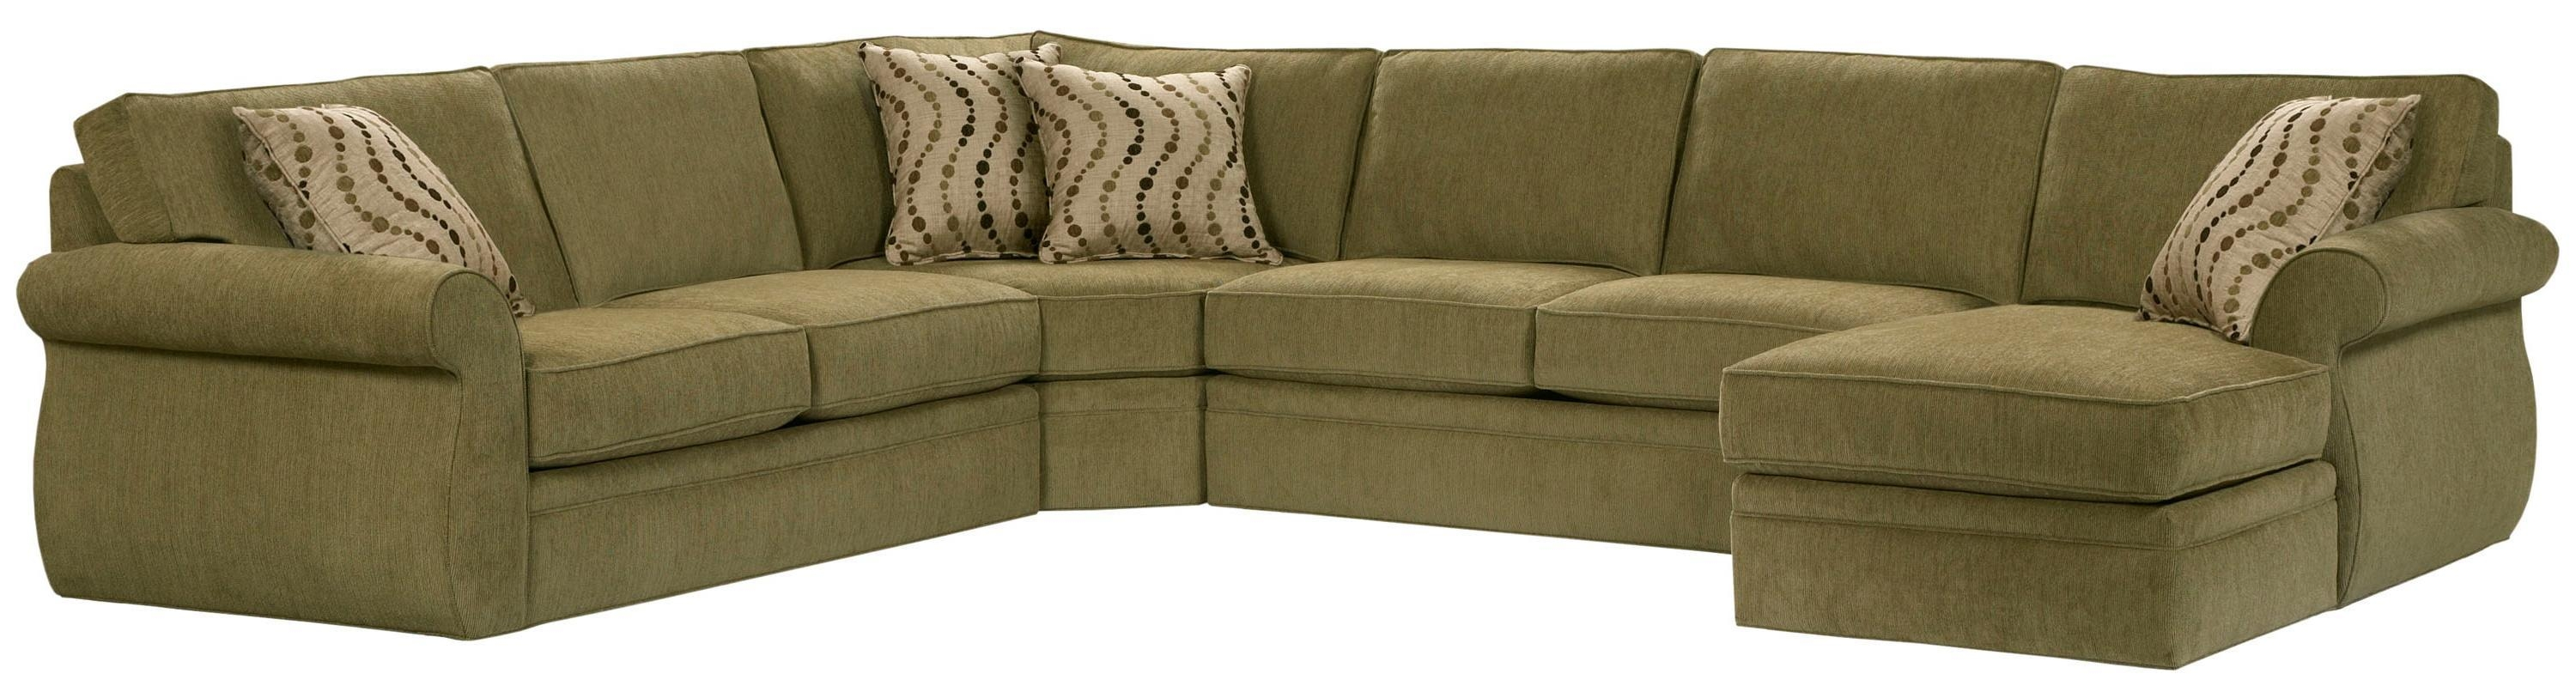 right arm sleeper sofa ekeskog cover 20 inspirations broyhill sectional sofas ideas